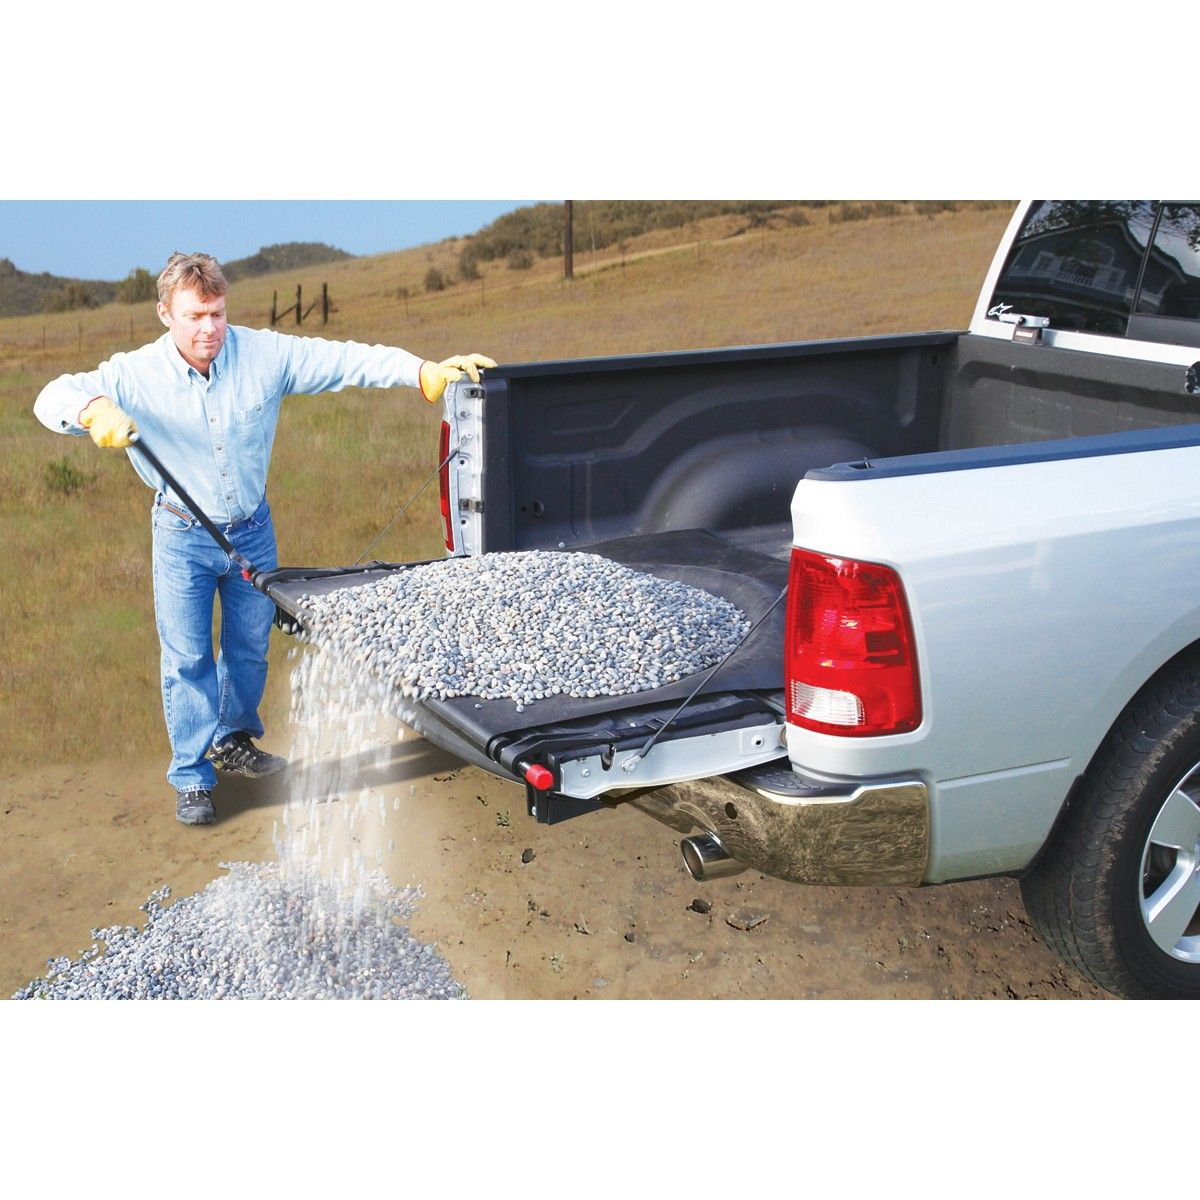 Truck Bed Cargo Unloader Truck Bed Yards And Vehicle